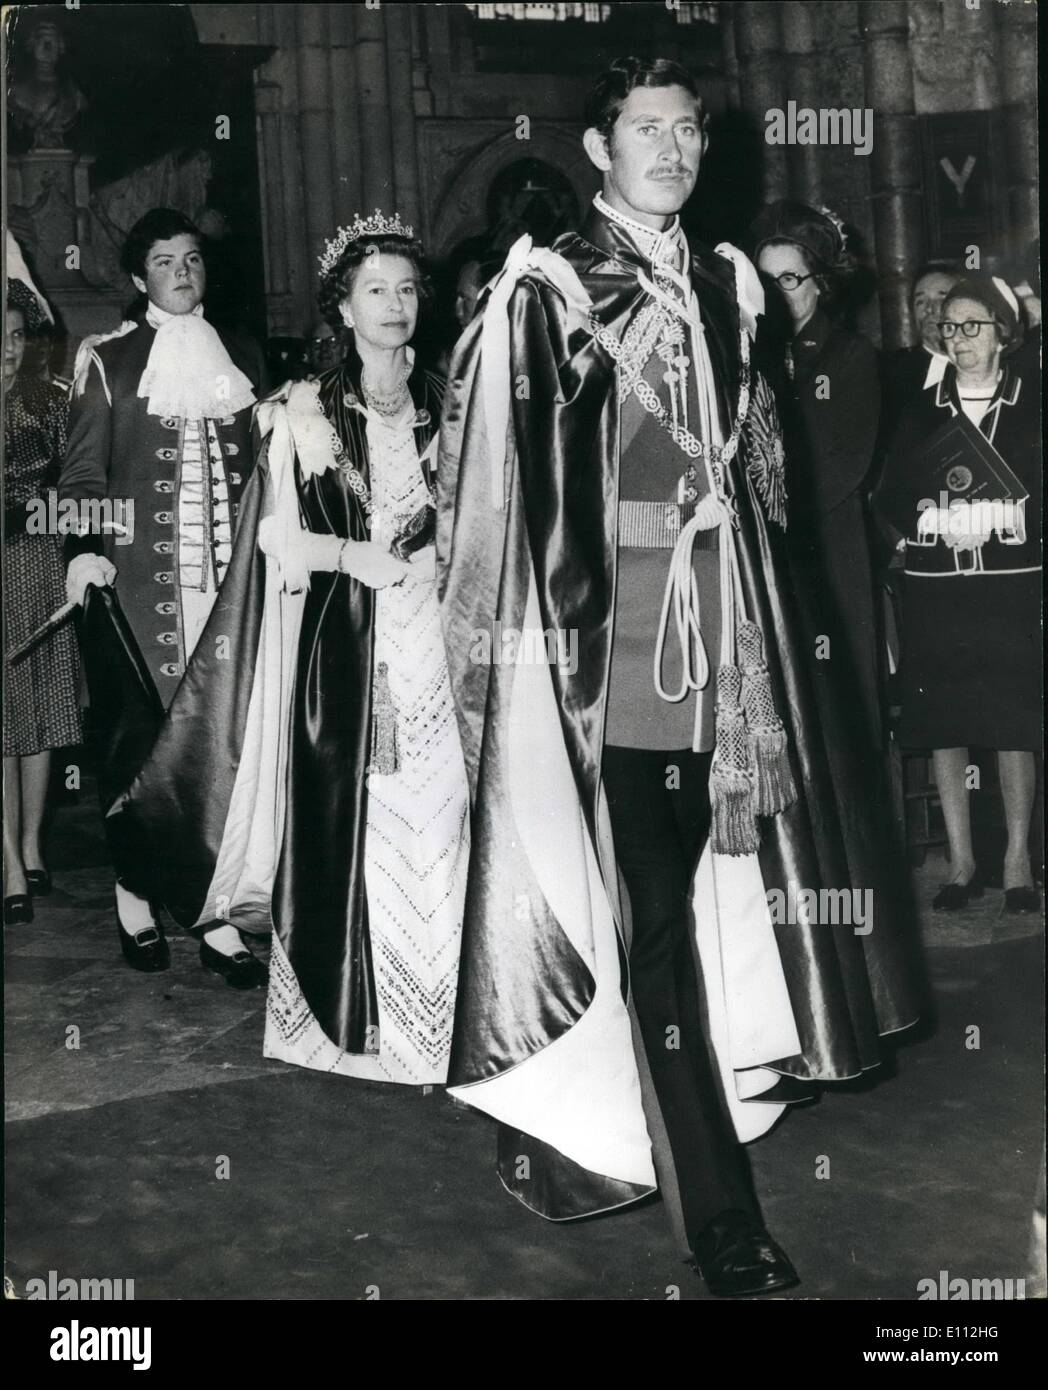 May 05, 1975 - The Prince of Wales is Installed as Great Master of the Most Honourable Order of the Bath by the Stock Photo